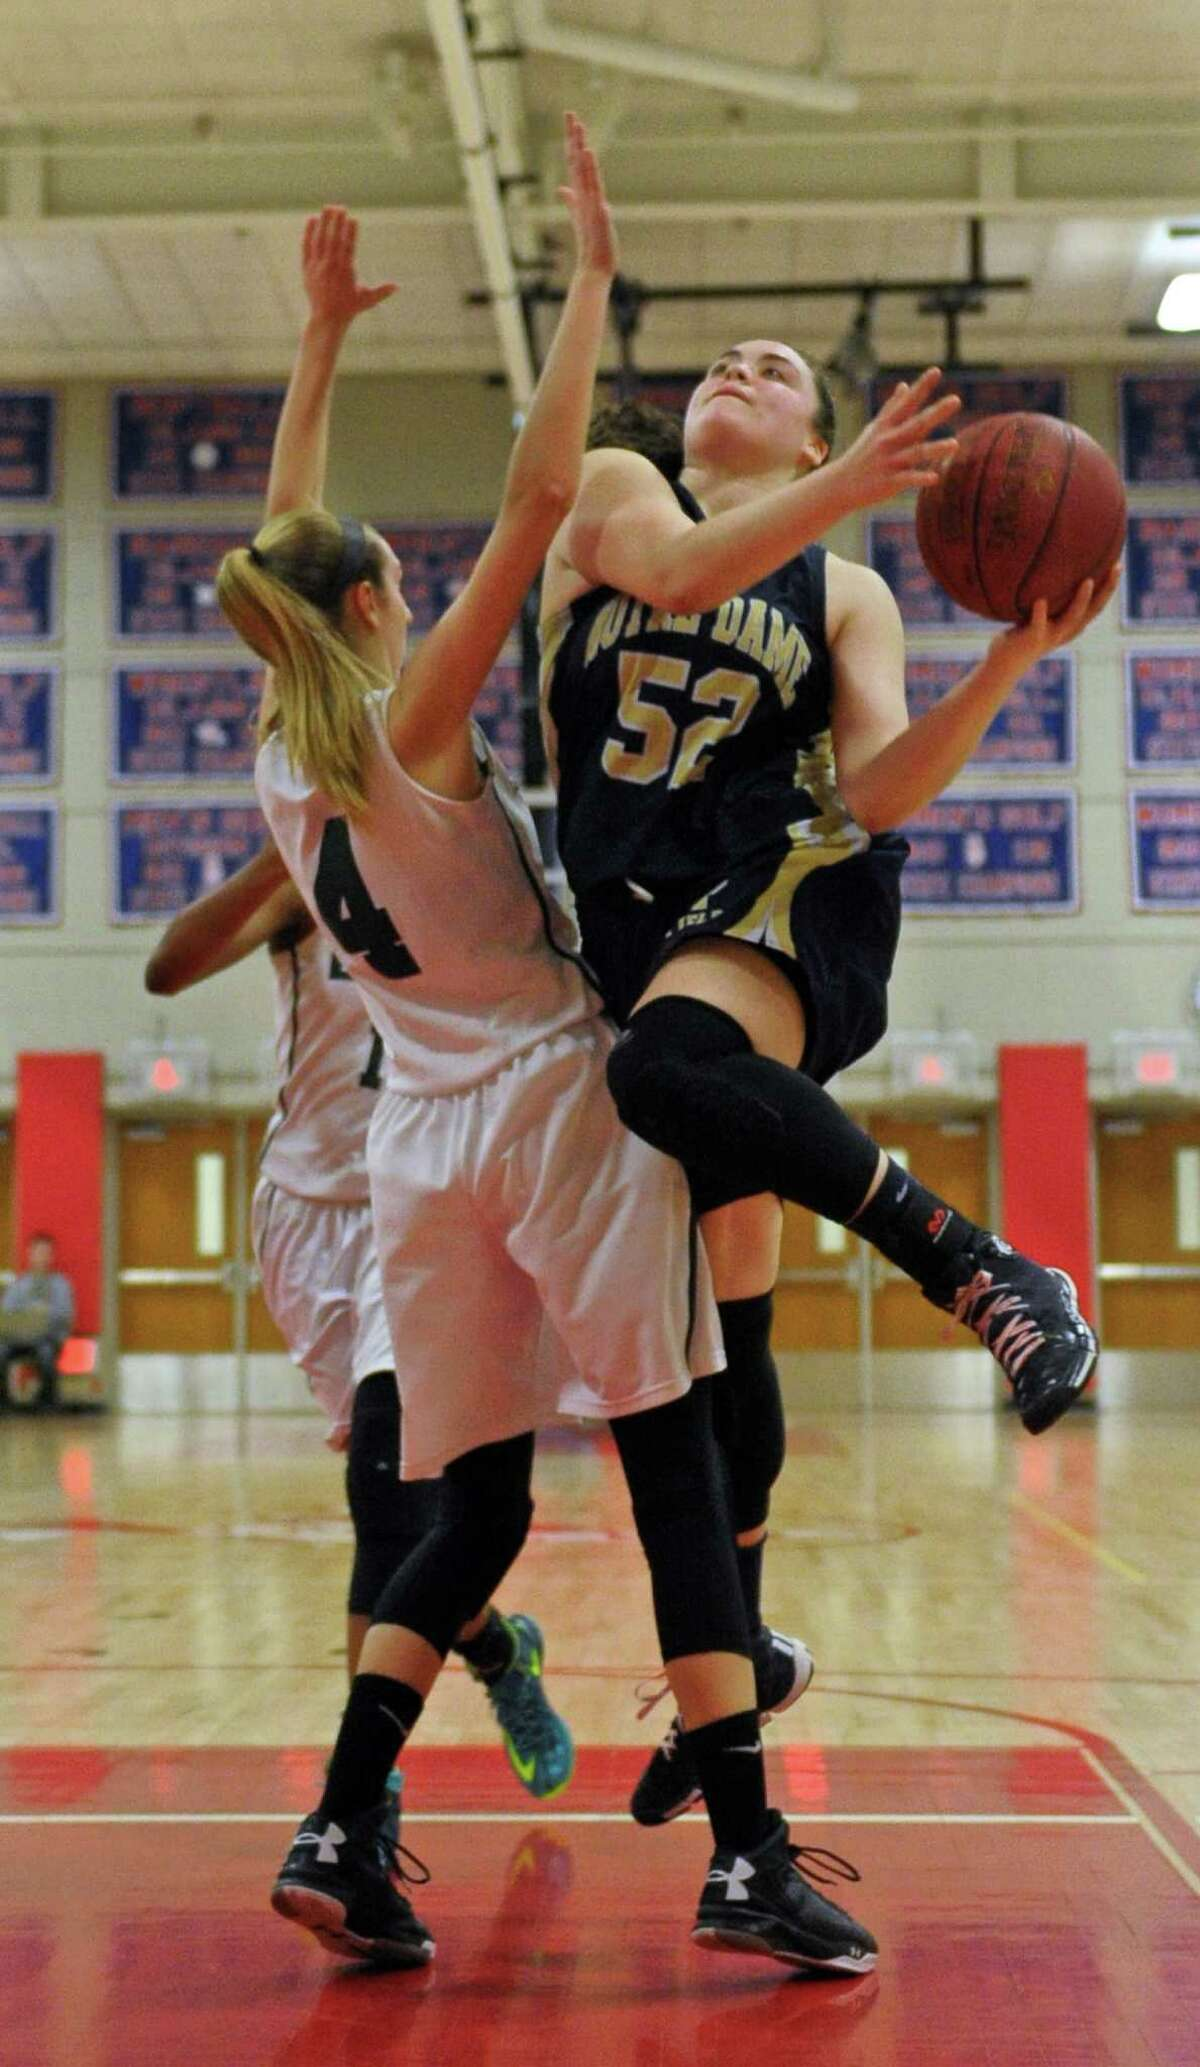 Notre Dame-Fairfield's Taylor Ceballos is fouled on her way to the basket by Enfield's Erica Lovering in Friday night's game. Ceballos had 20 points, 16 from the foul line.